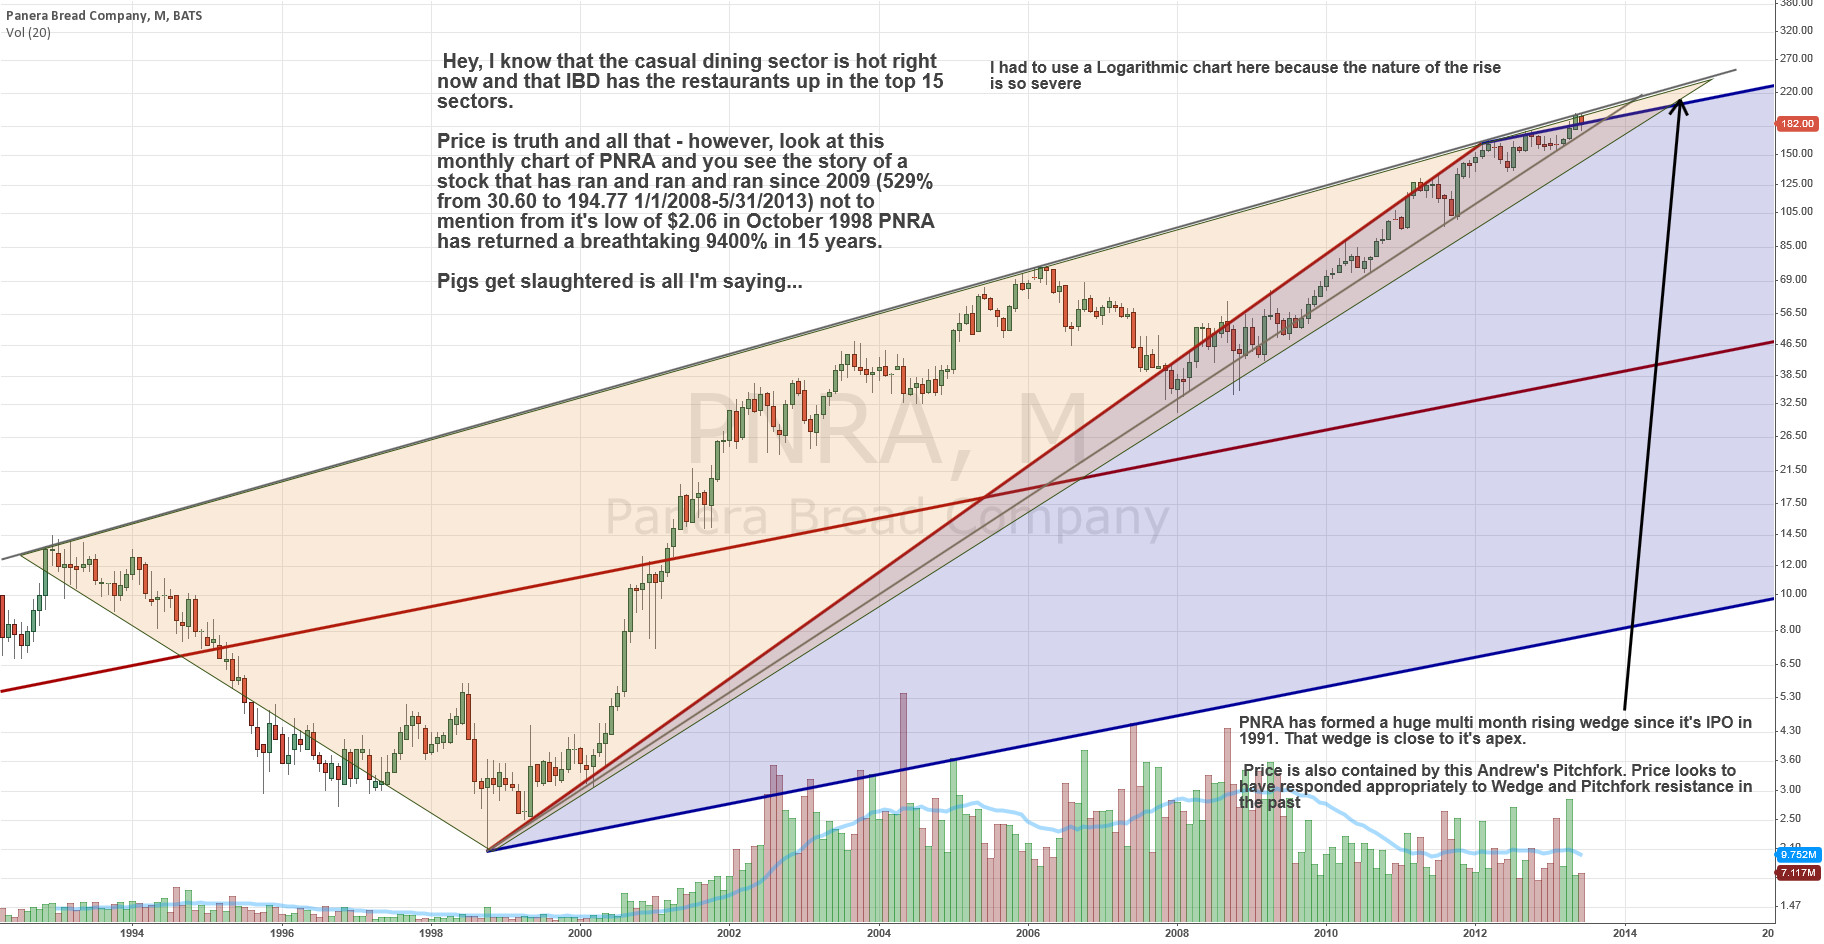 Monthly rising wedge and Pitchfork Study